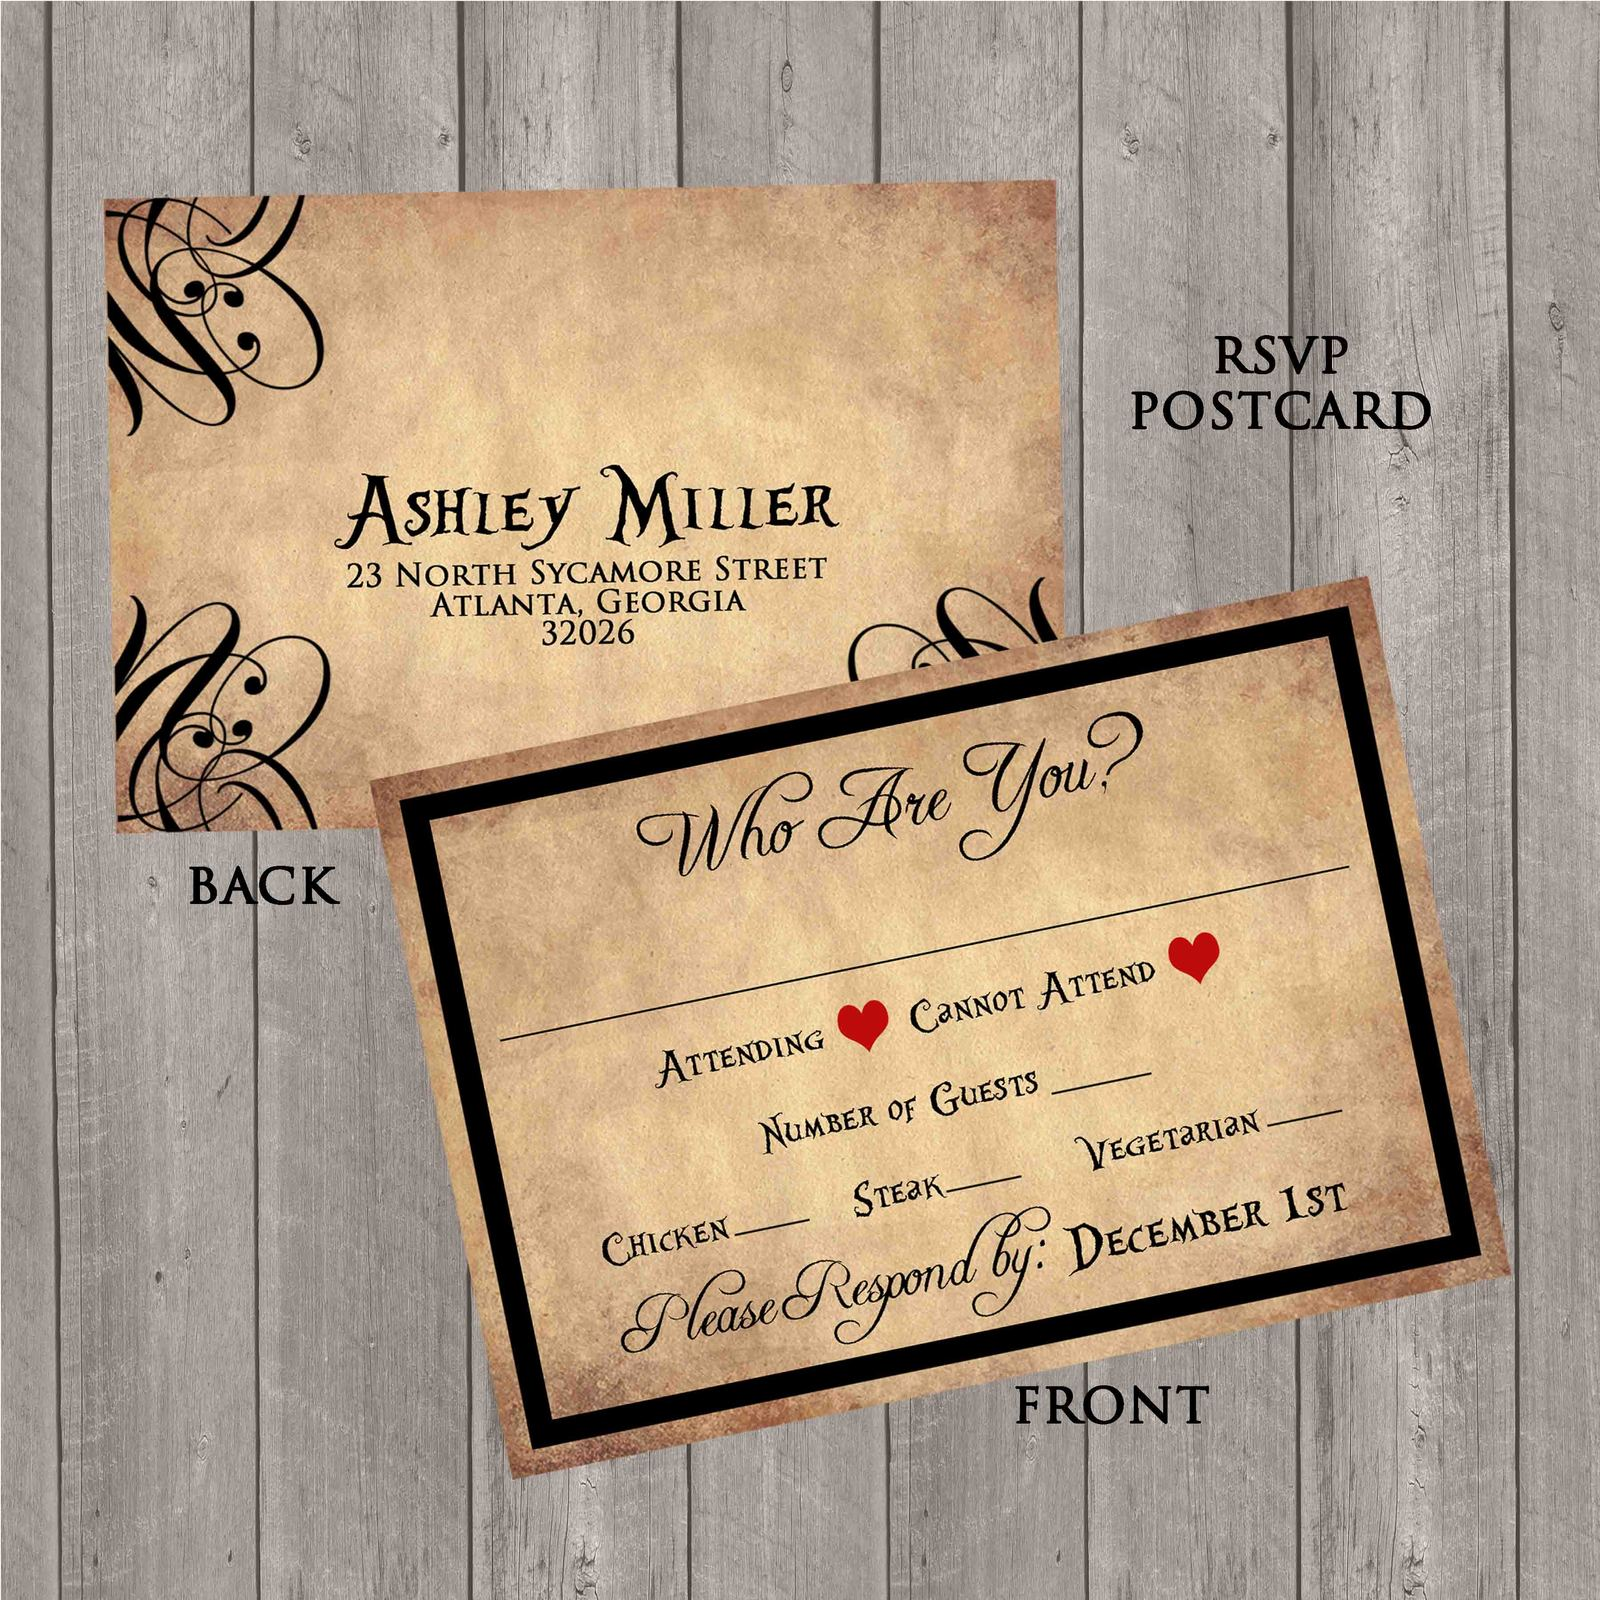 Alice And Wonderland Wedding Invitations: Vintage Alice In Wonderland Wedding Invitation Set: RSVP